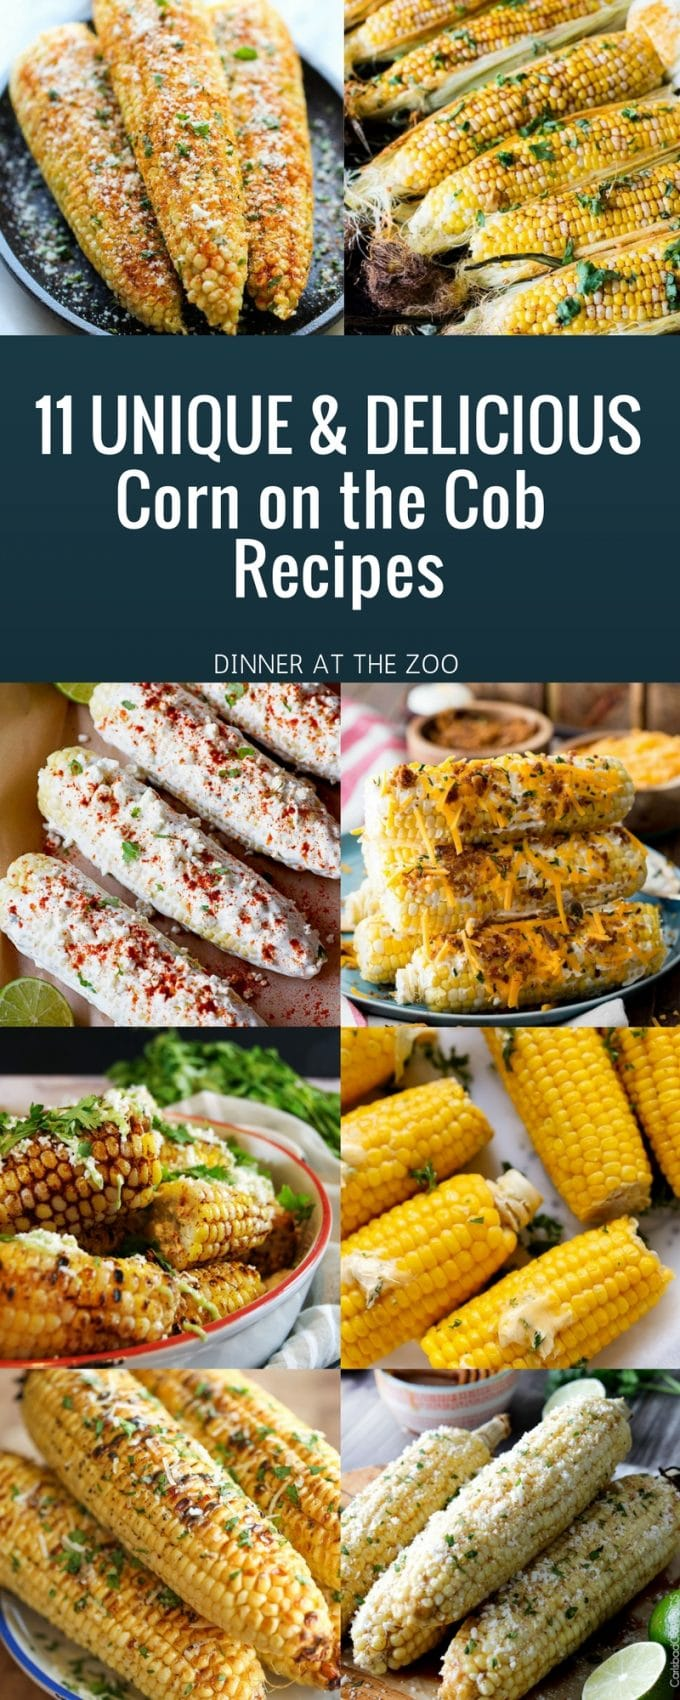 11 Delicious & Unique Corn on the Cob Recipes #corn #grilling #sidedish #summer #dinneratthezoo